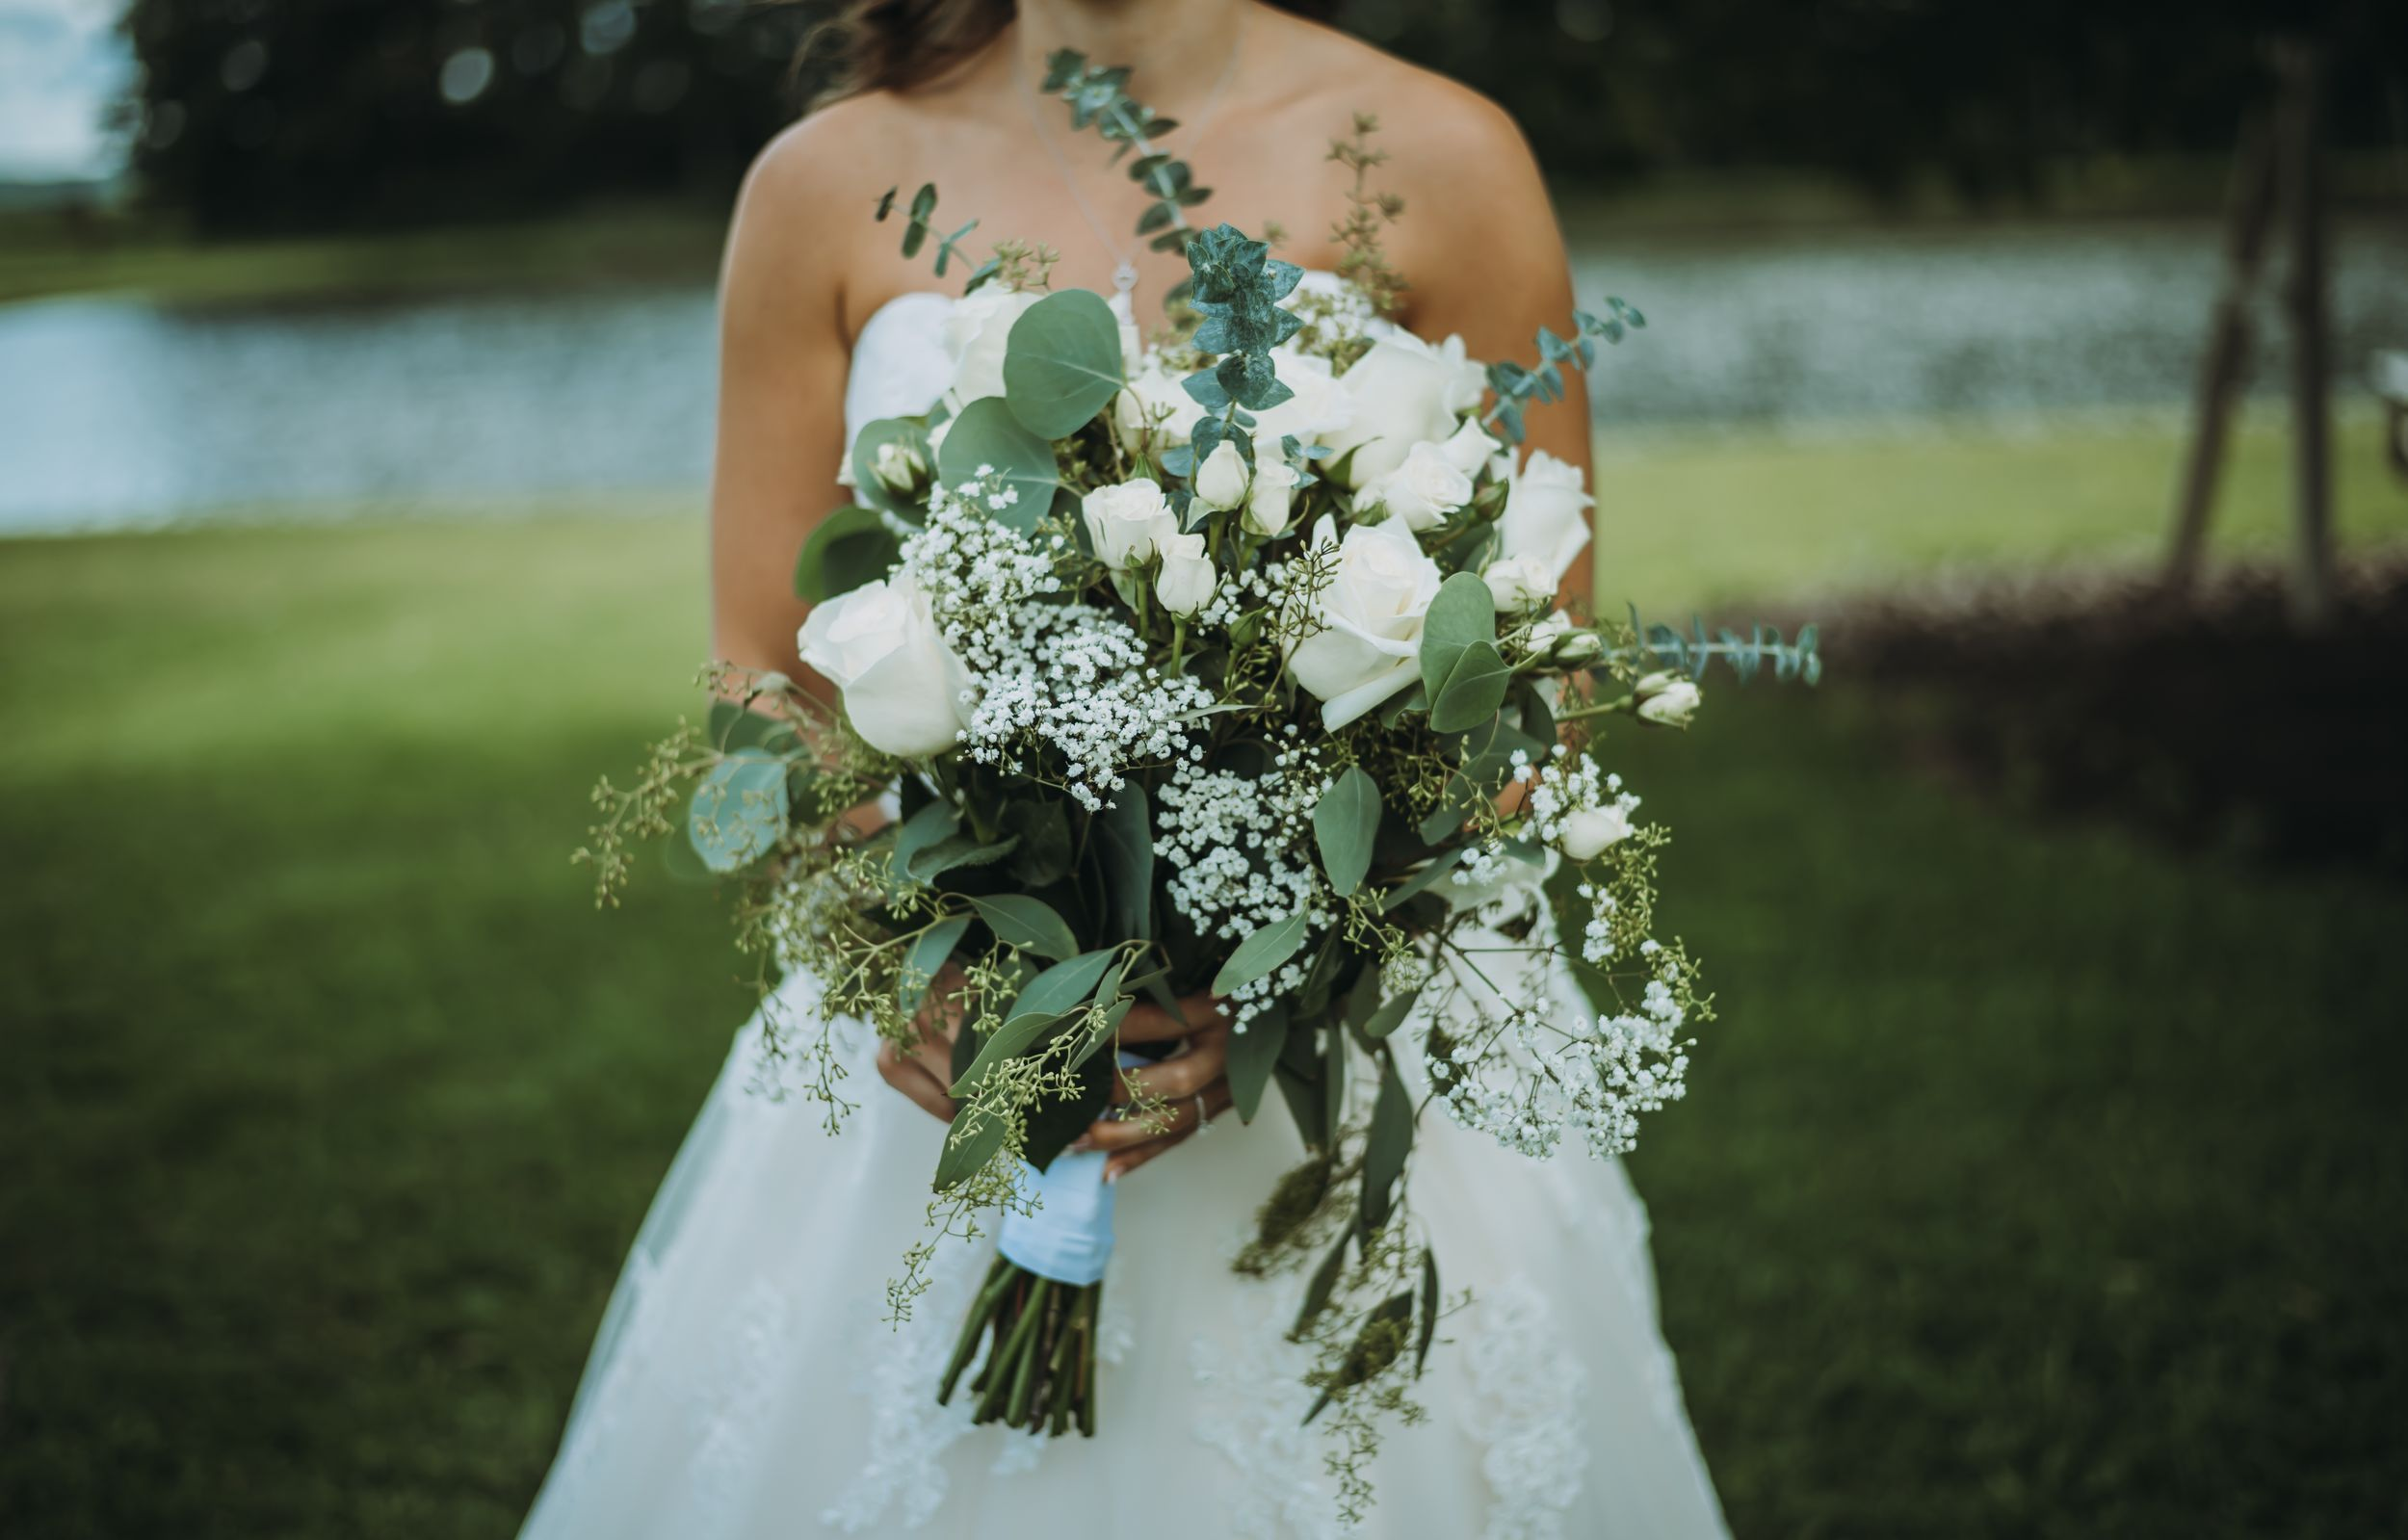 Orlando Florida Wedding Photographer Bridal bouquet